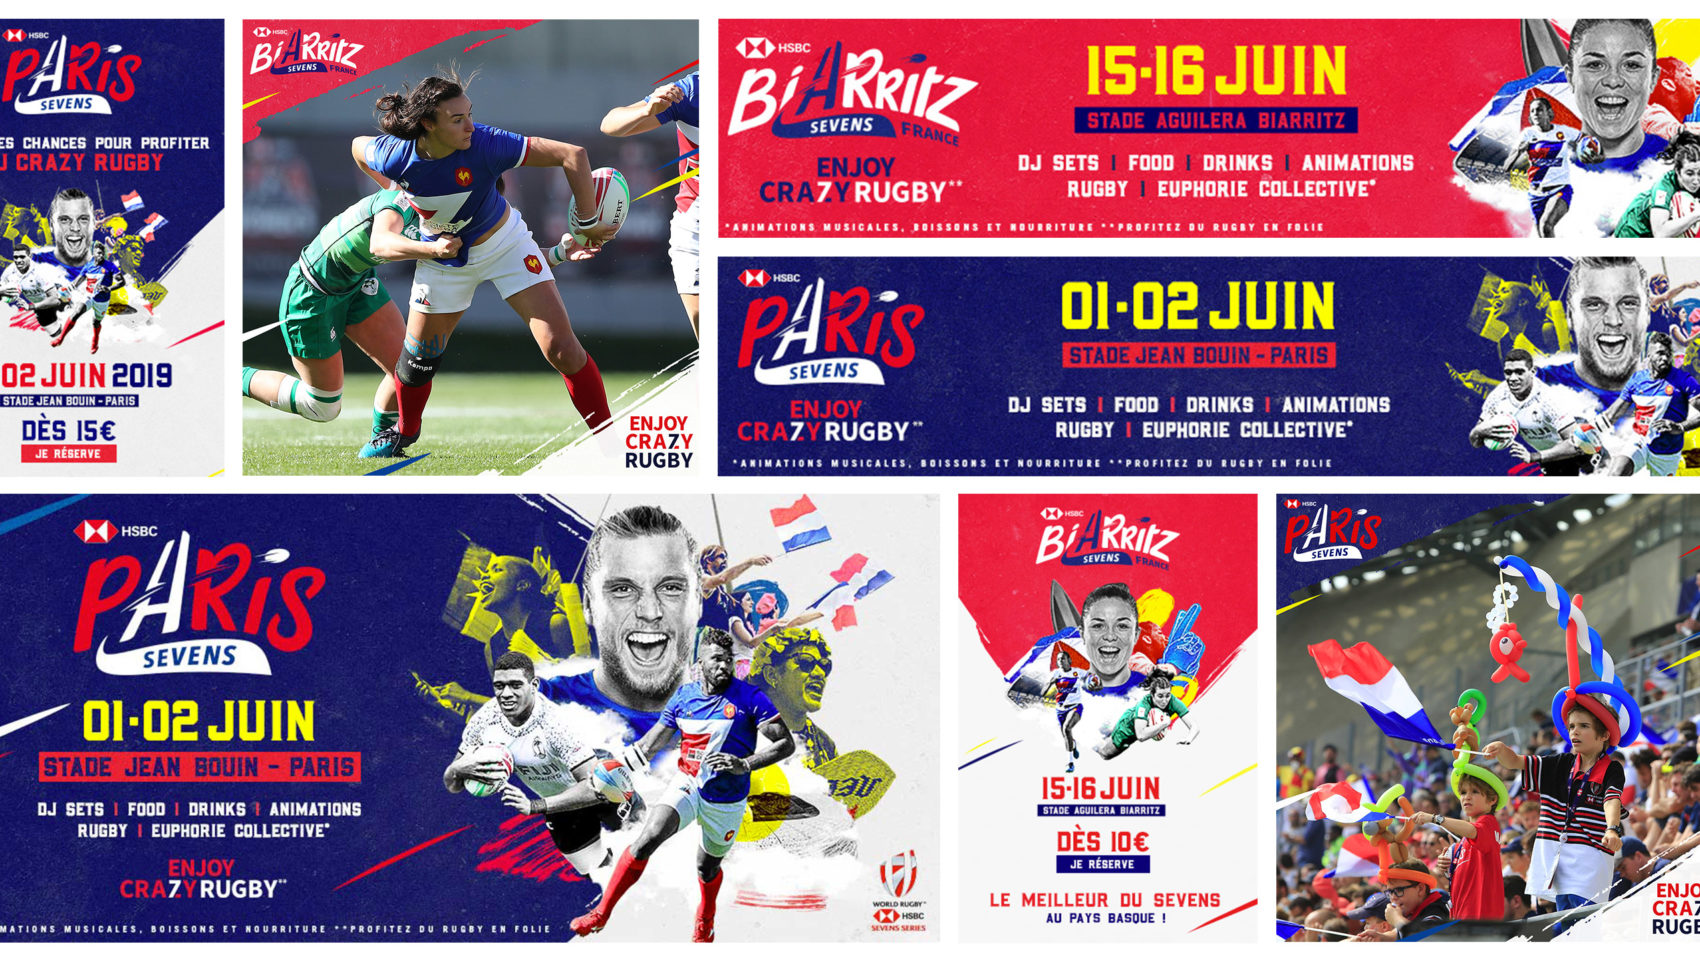 Projet_visuel_5_Federation_Francaise_Rugby_Paris_Biarritz_sevens_french_rugby